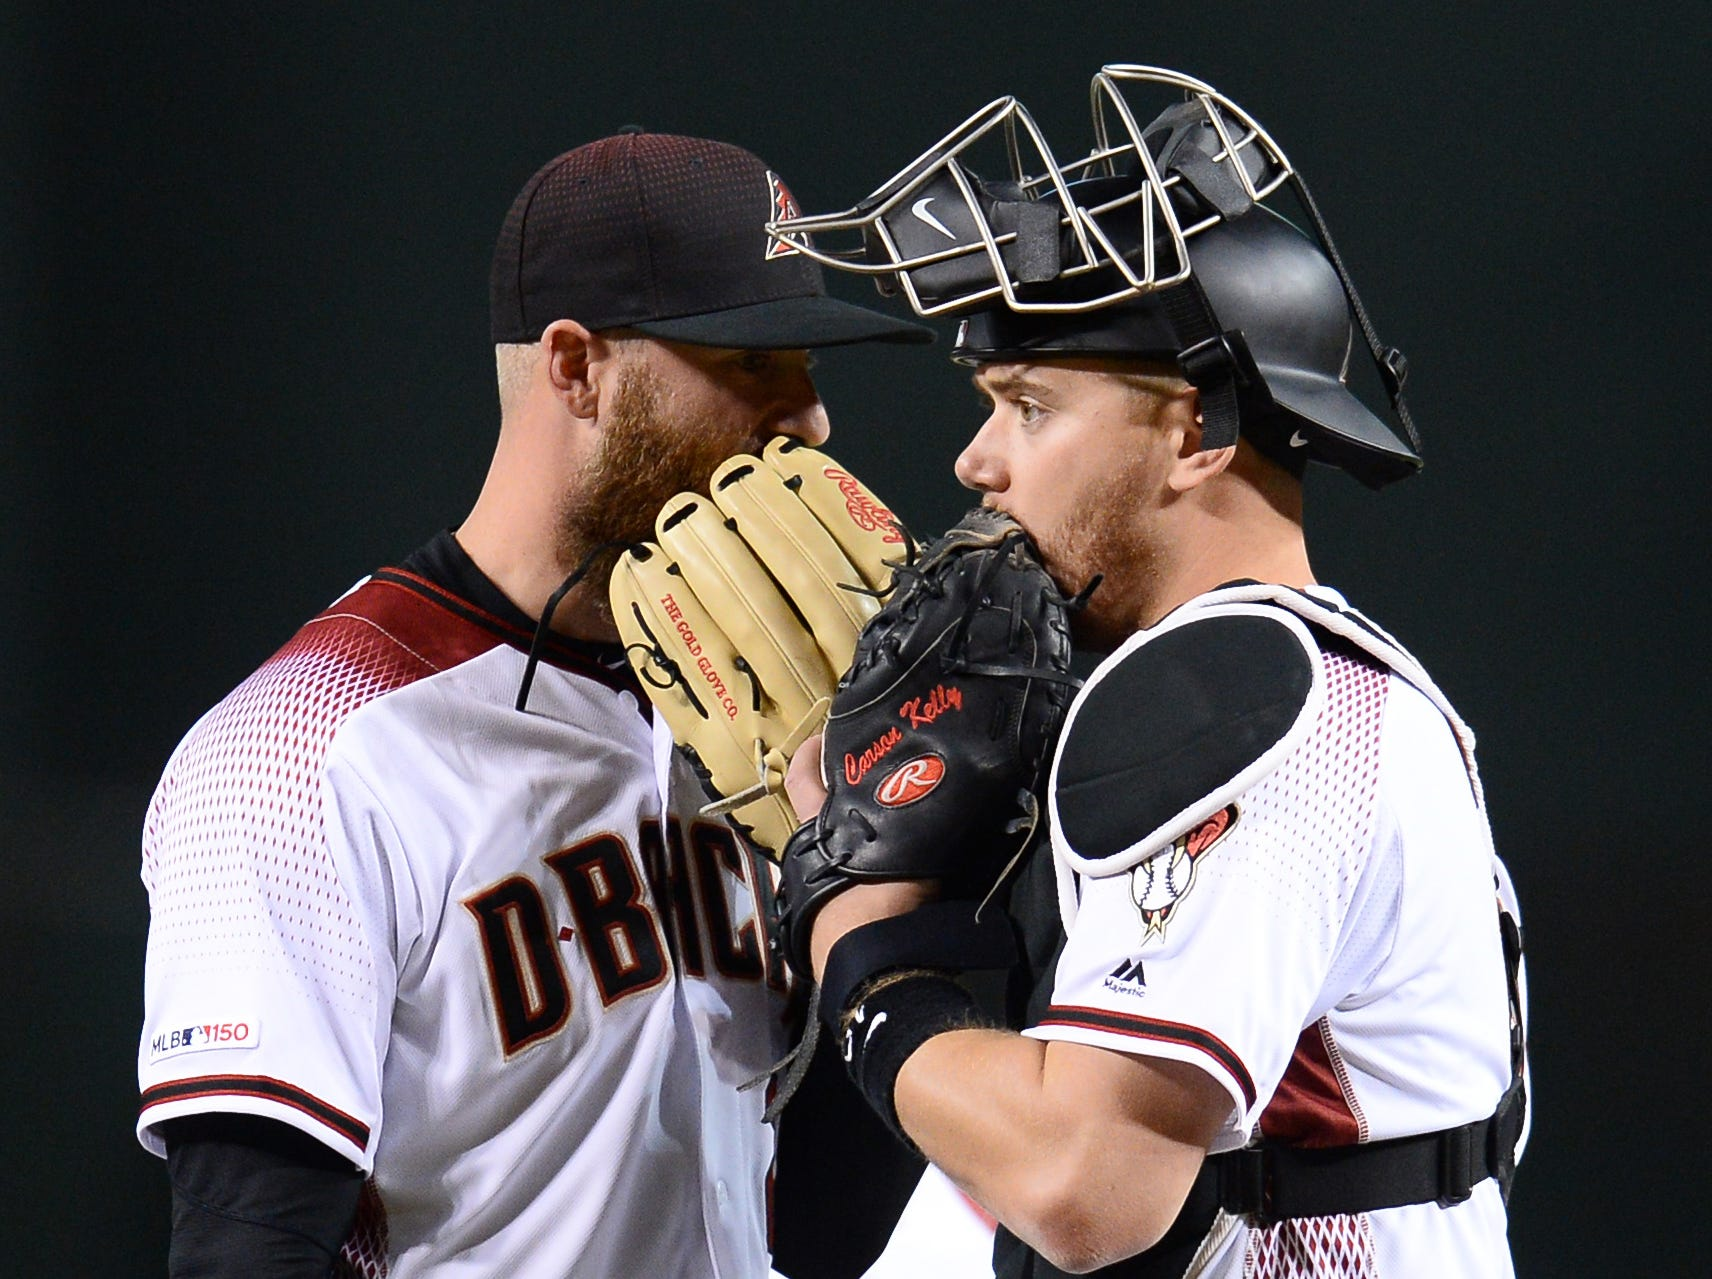 Apr 10, 2019; Phoenix, AZ, USA; Arizona Diamondbacks relief pitcher Archie Bradley (25) talks with Arizona Diamondbacks catcher Carson Kelly (18) during the seventh inning against the Texas Rangers at Chase Field. Mandatory Credit: Joe Camporeale-USA TODAY Sports